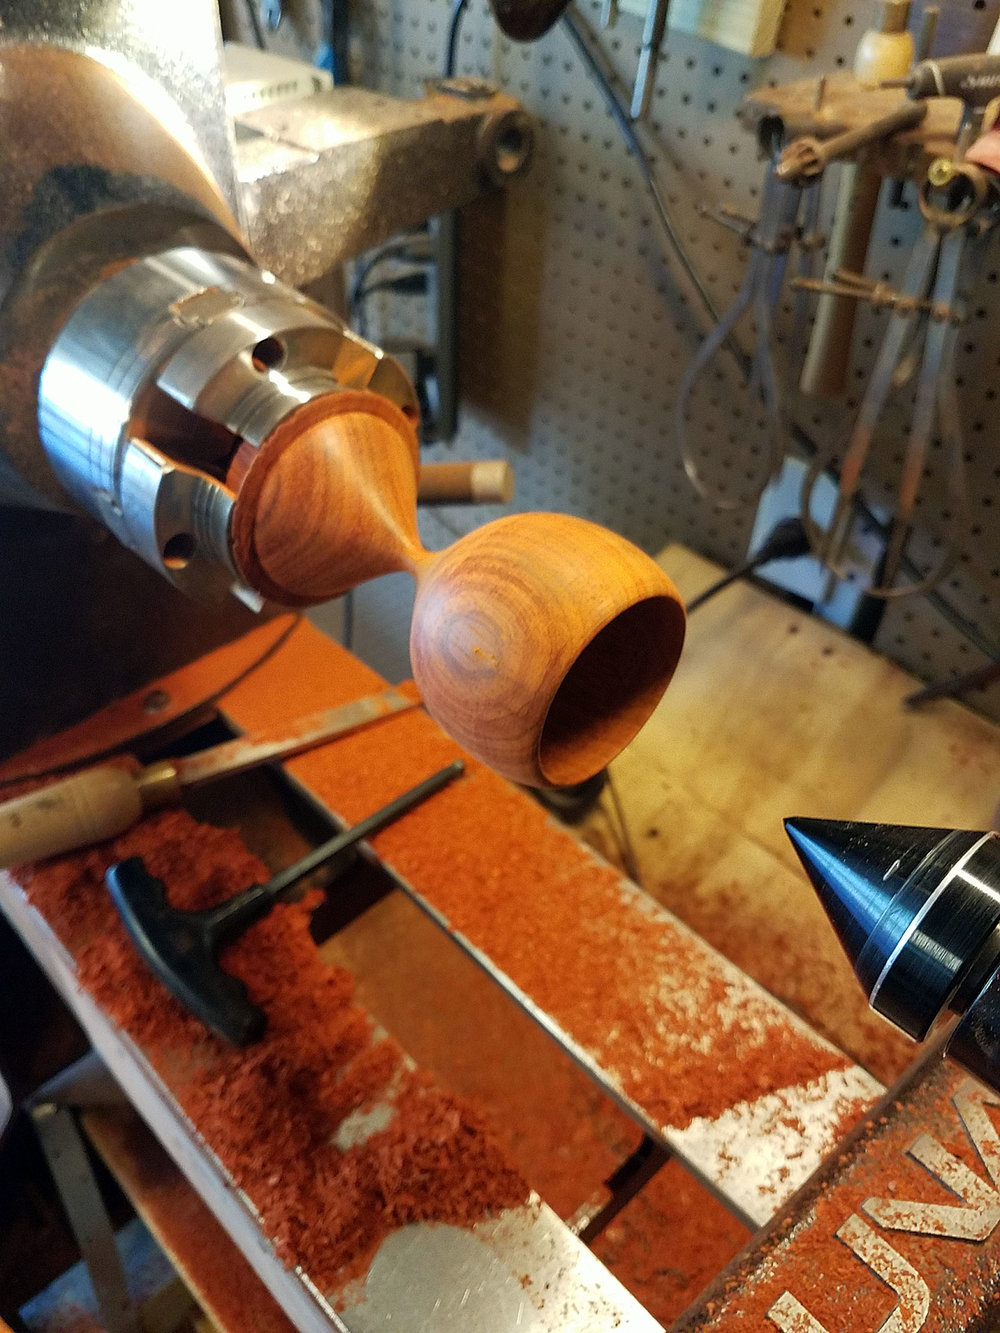 Padauk wood is  a very vibrant orange turning everything in the shop a bright orange, including Terry!